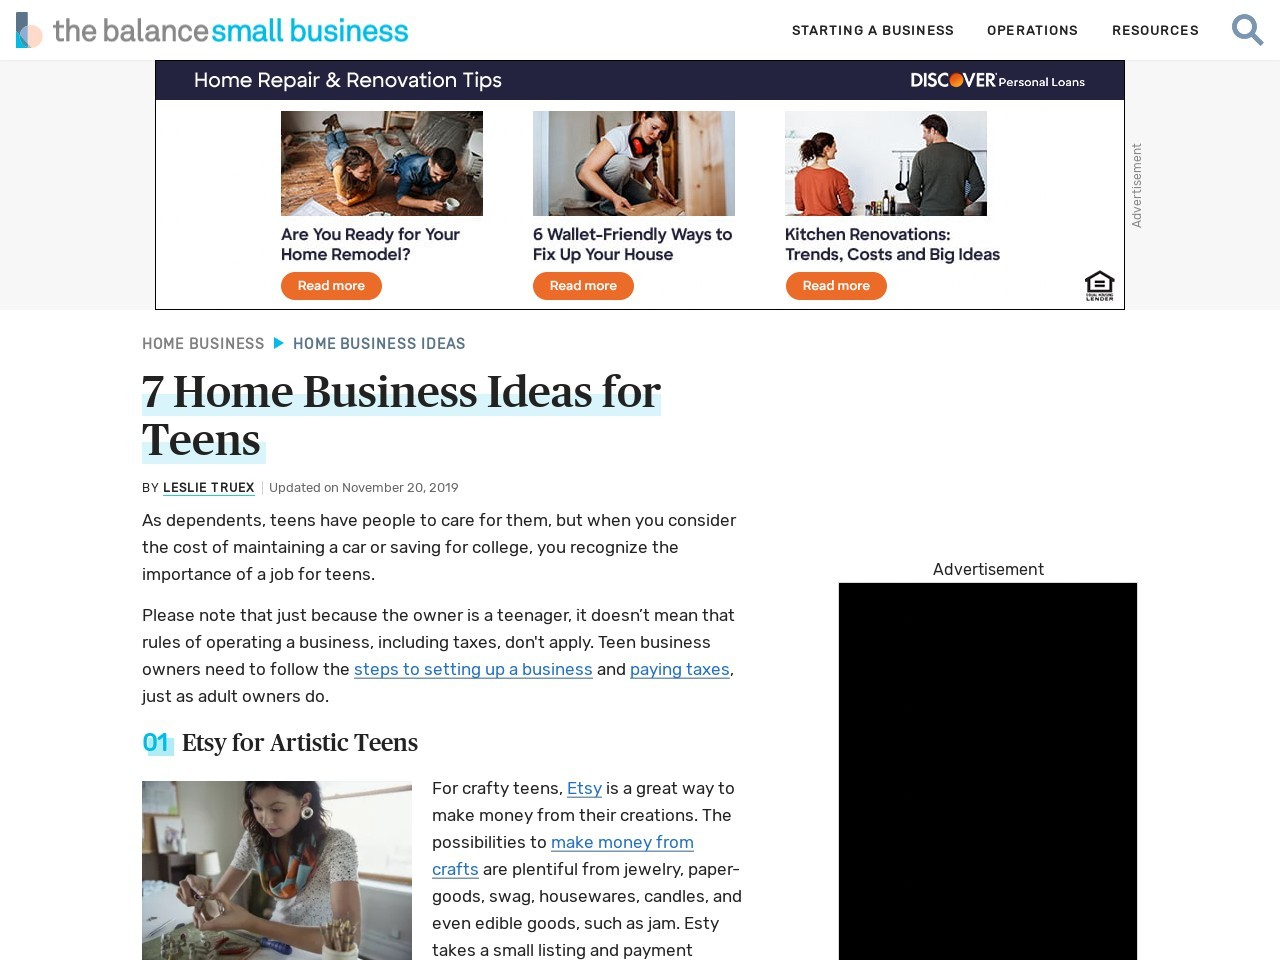 Help Your Child Start a Home-Based Business